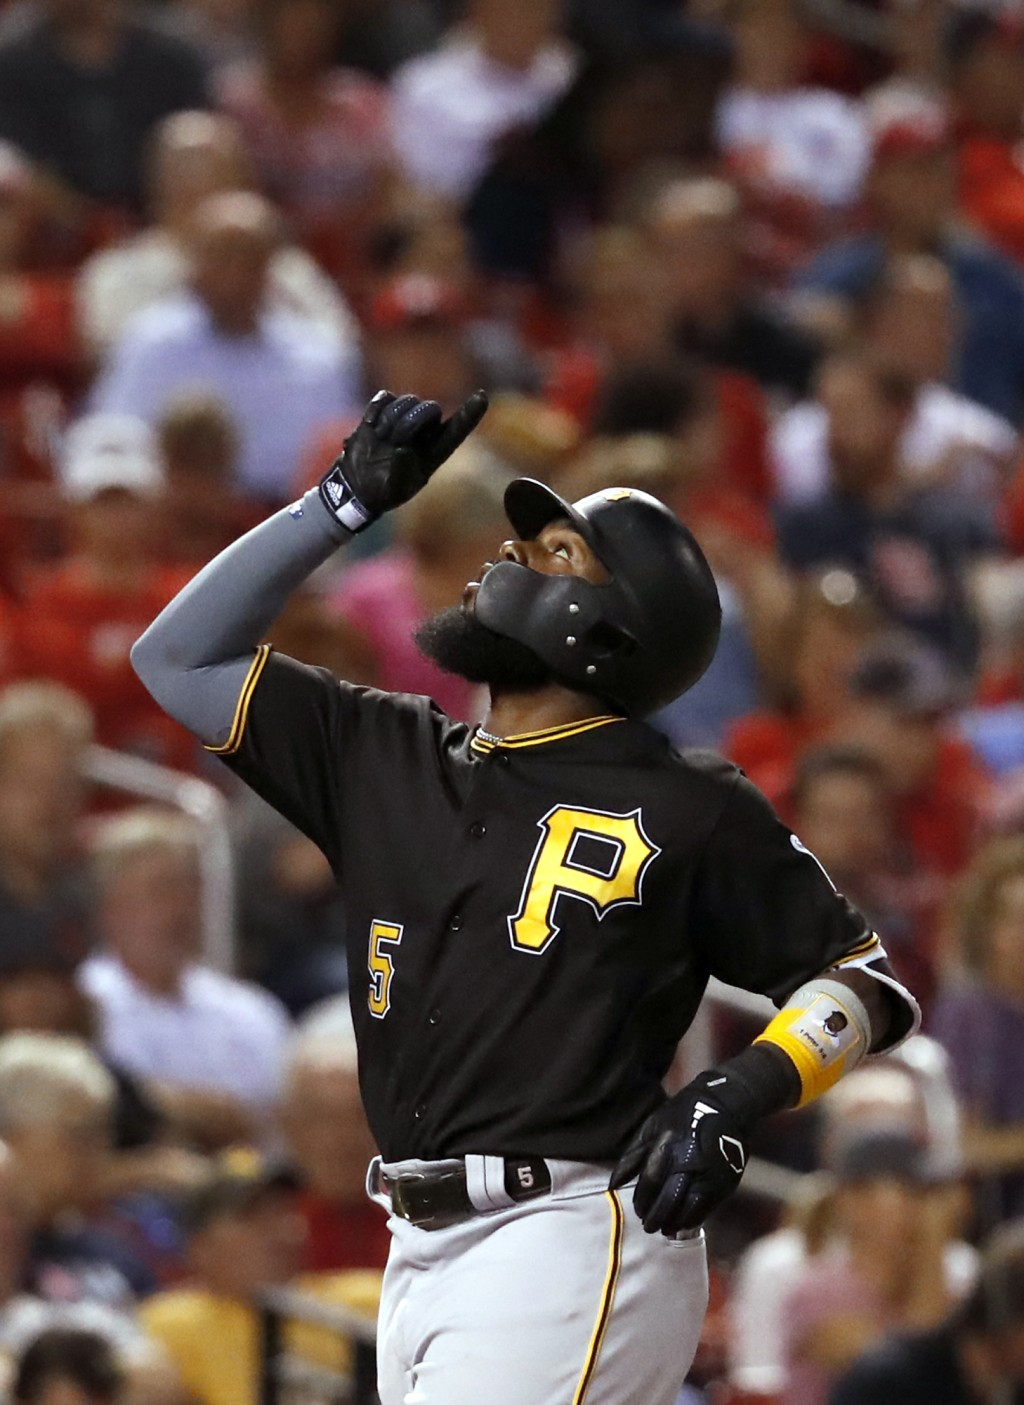 Pittsburgh Pirates' Josh Harrison points skyward as he arrives home after hitting a solo home run during the sixth inning of a baseball game against t